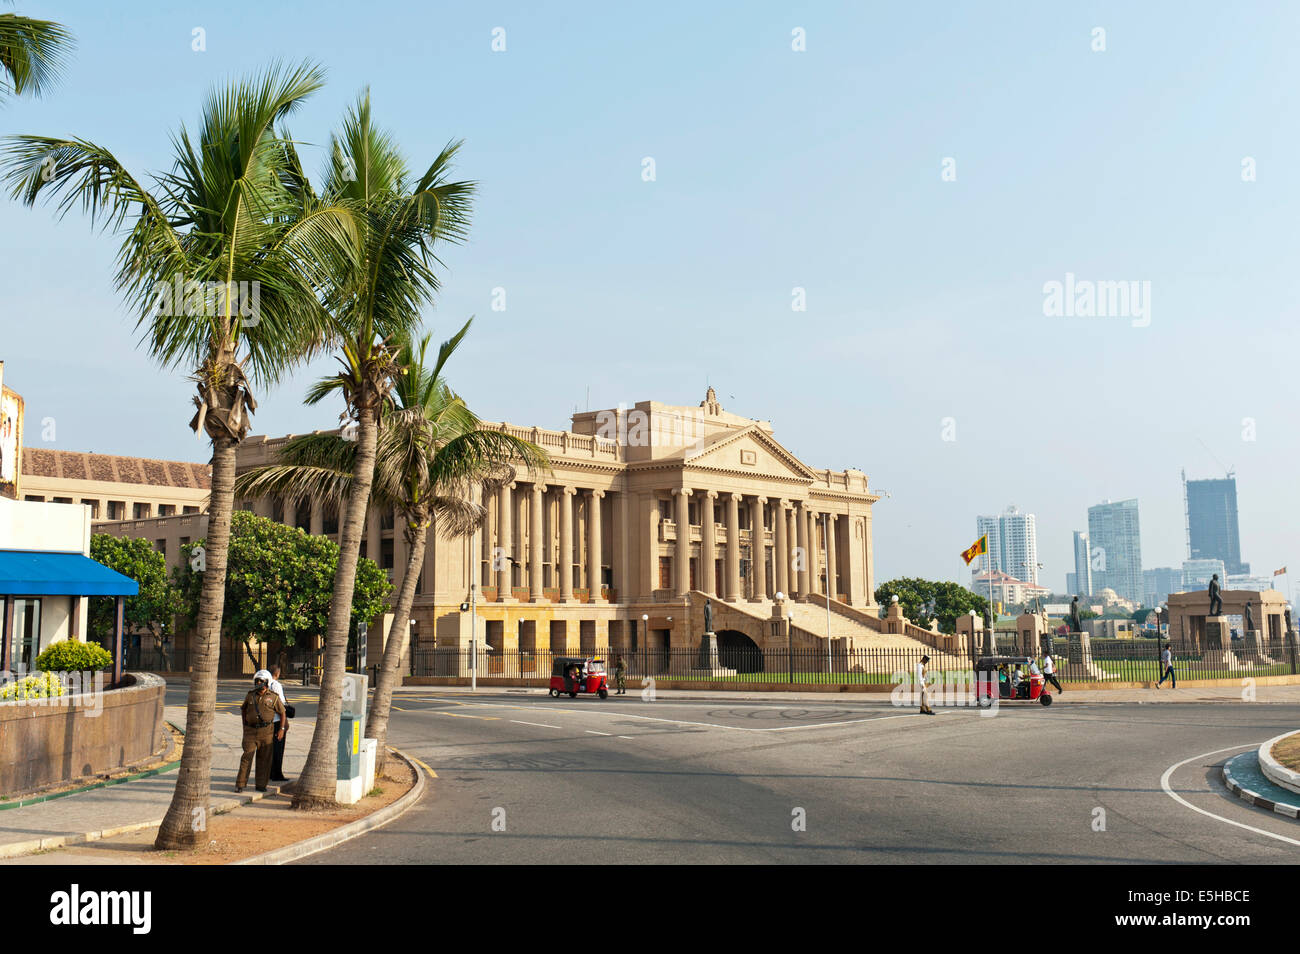 Altes Parlament, neoklassische Architektur unter Palmen, Colombo, Sri Lanka Stockbild